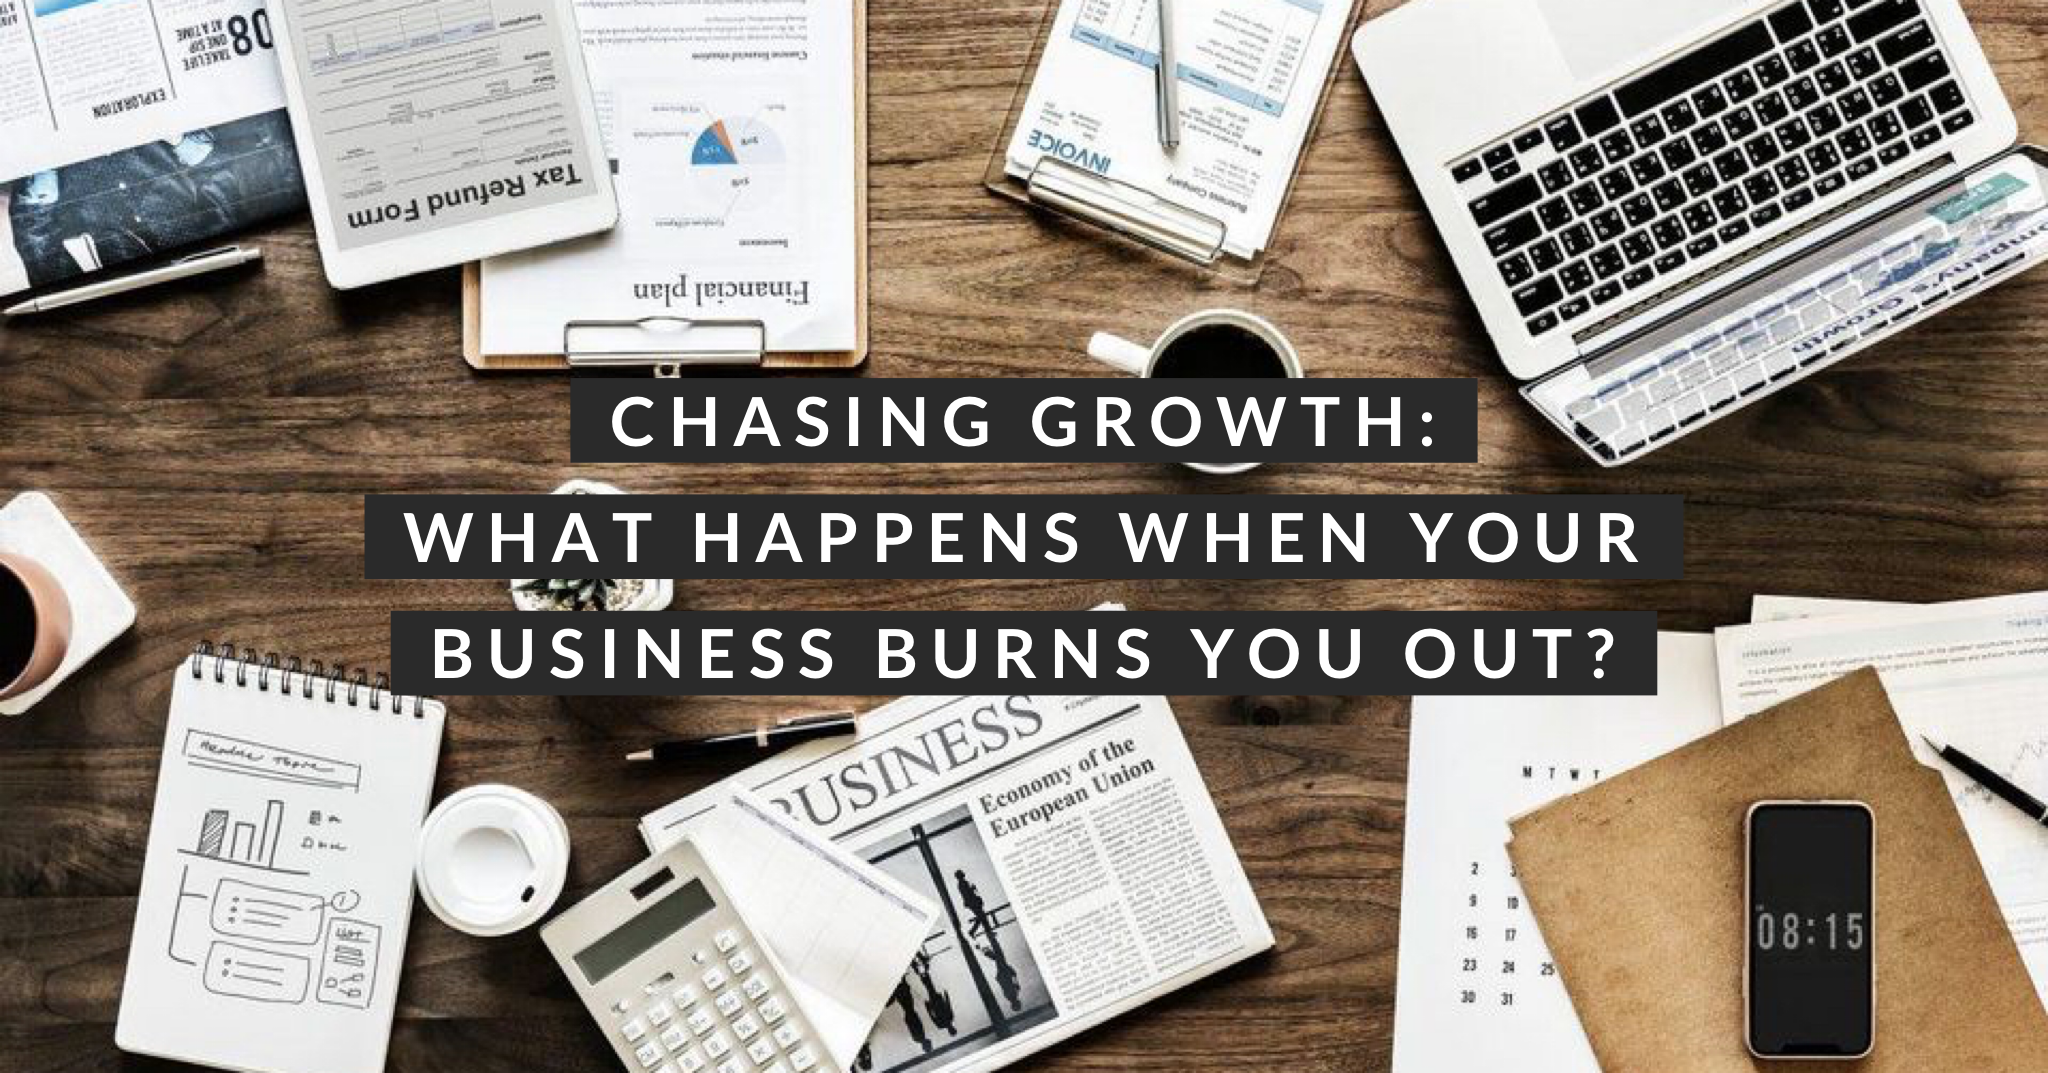 TMBA519: Chasing Growth: What Happens When Your Business Burns You Out? post image